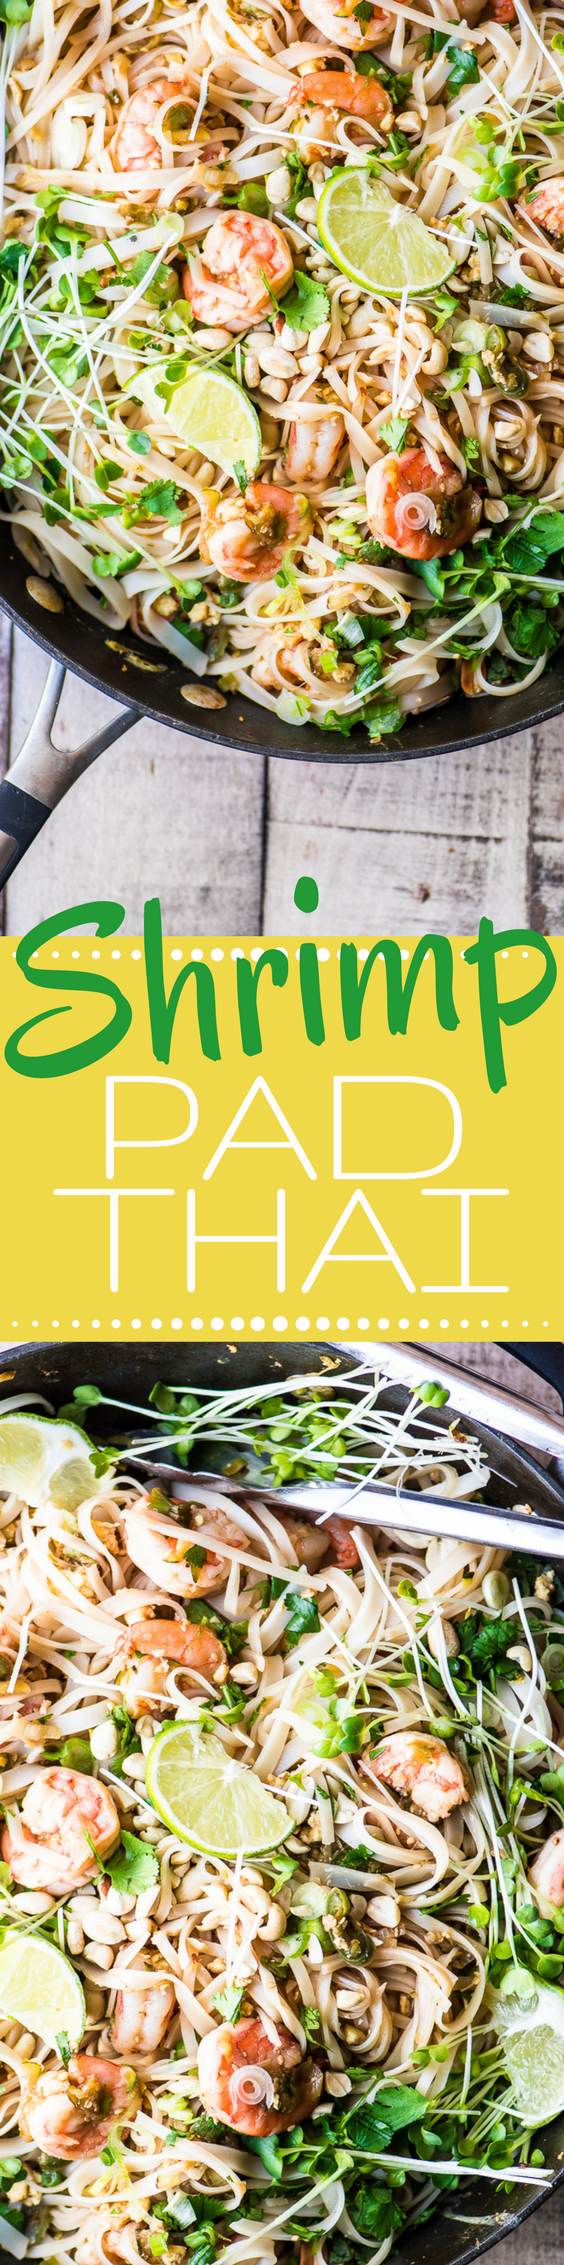 Shrimp Pad Thai is a healthy stir fry noodle bowl made with gluten free rice noodles, shrimp, and all the classic Thai flavors like ginger, garlic, lime, and cilantro ~ this meal beats take-out by a mile! #shrimp #padthairecipe #shrimprecipe #Thai #thairecipe #easypadthai #noodles #Thaifood #dinner #glutenfree #takeoutrecipe